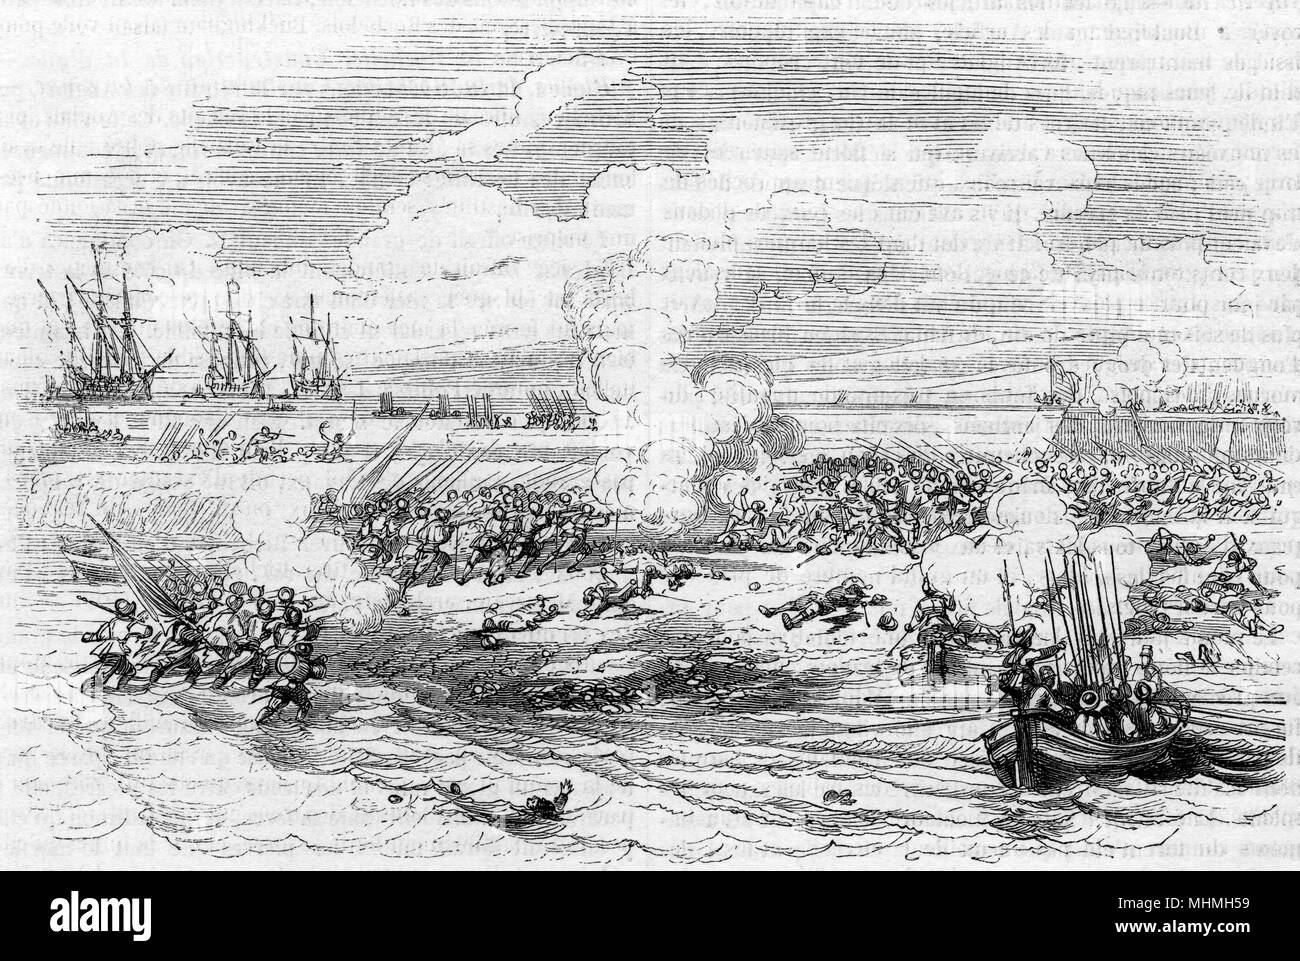 The defeat of the English forces during the siege of La Rochelle.       Date: 1627 - Stock Image